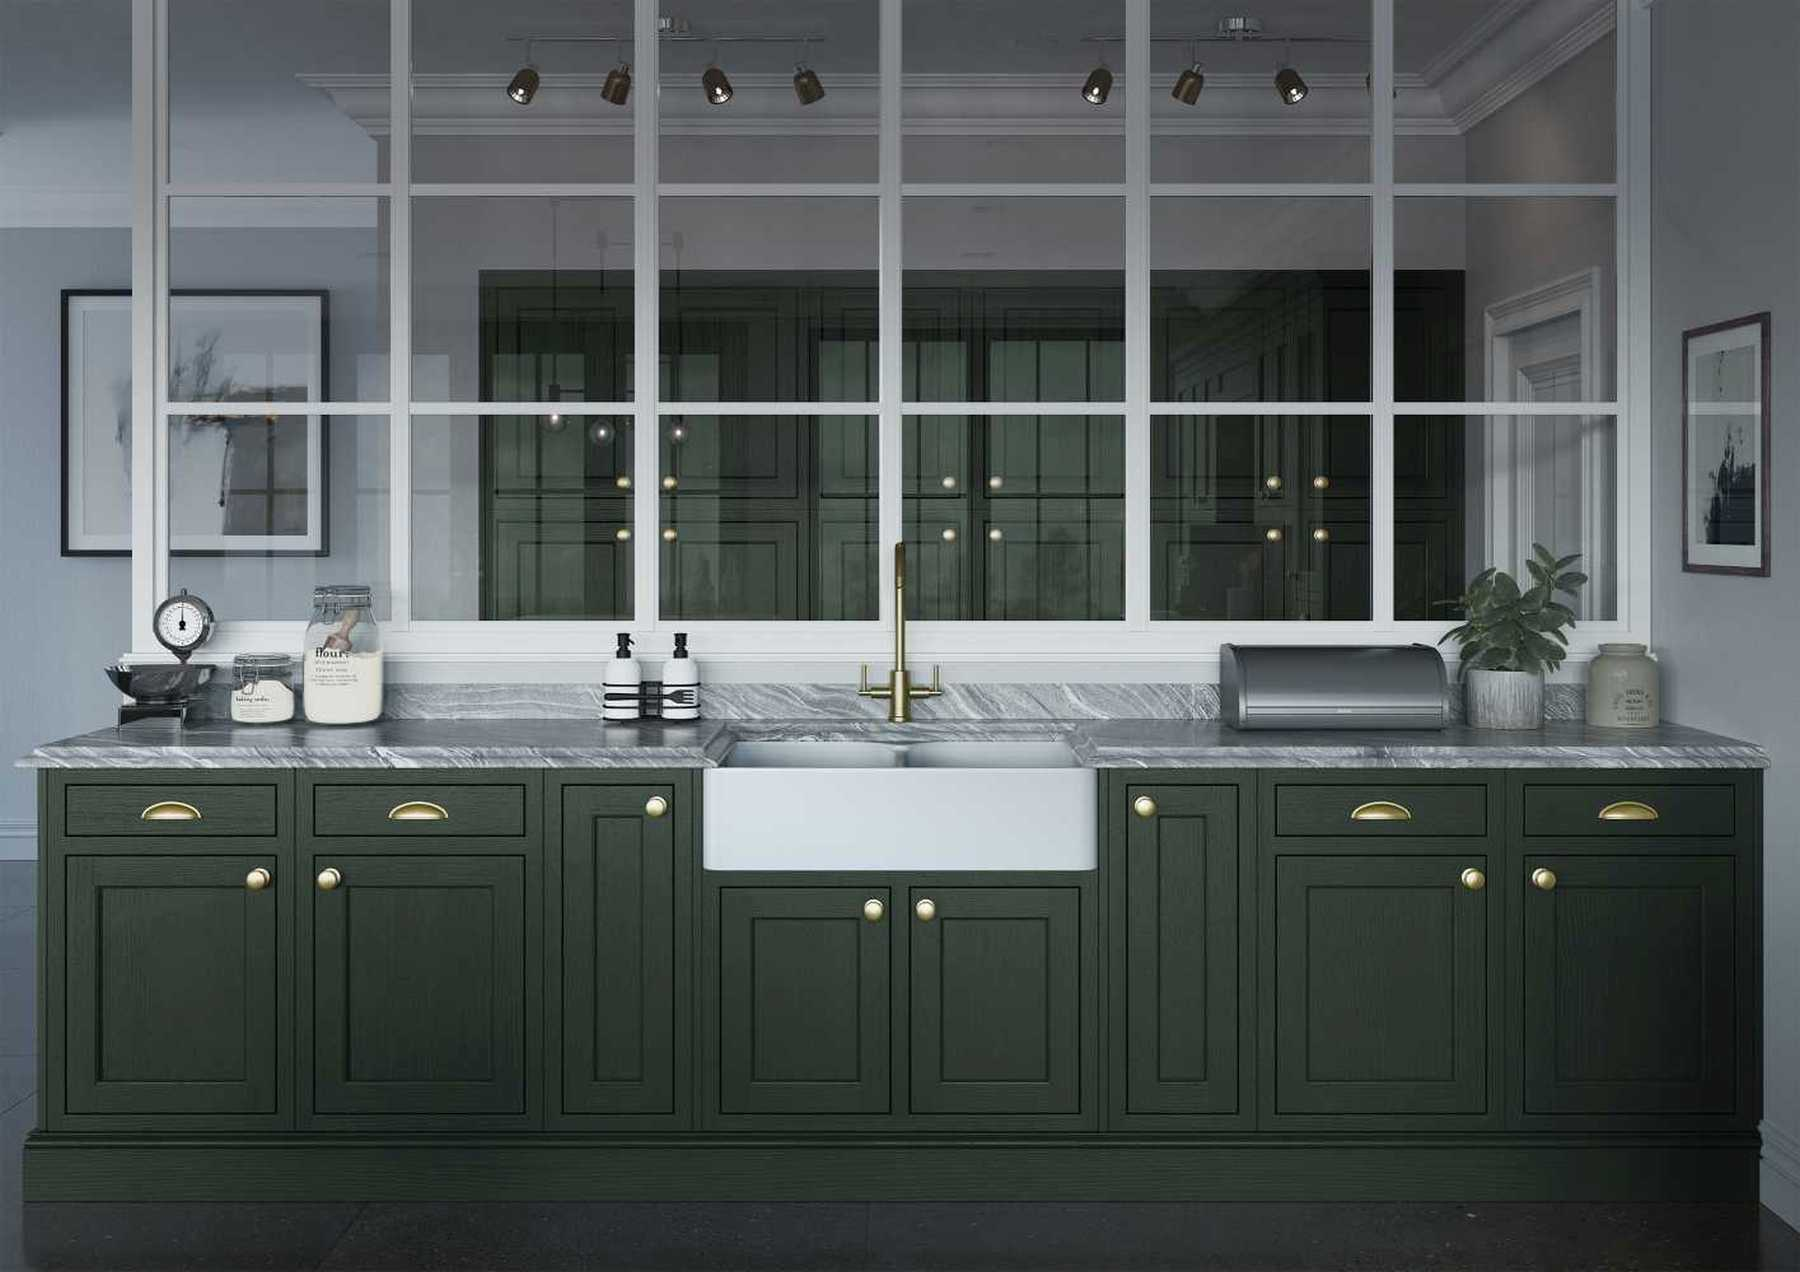 Luxurious inframe kitchen in forst green sink run